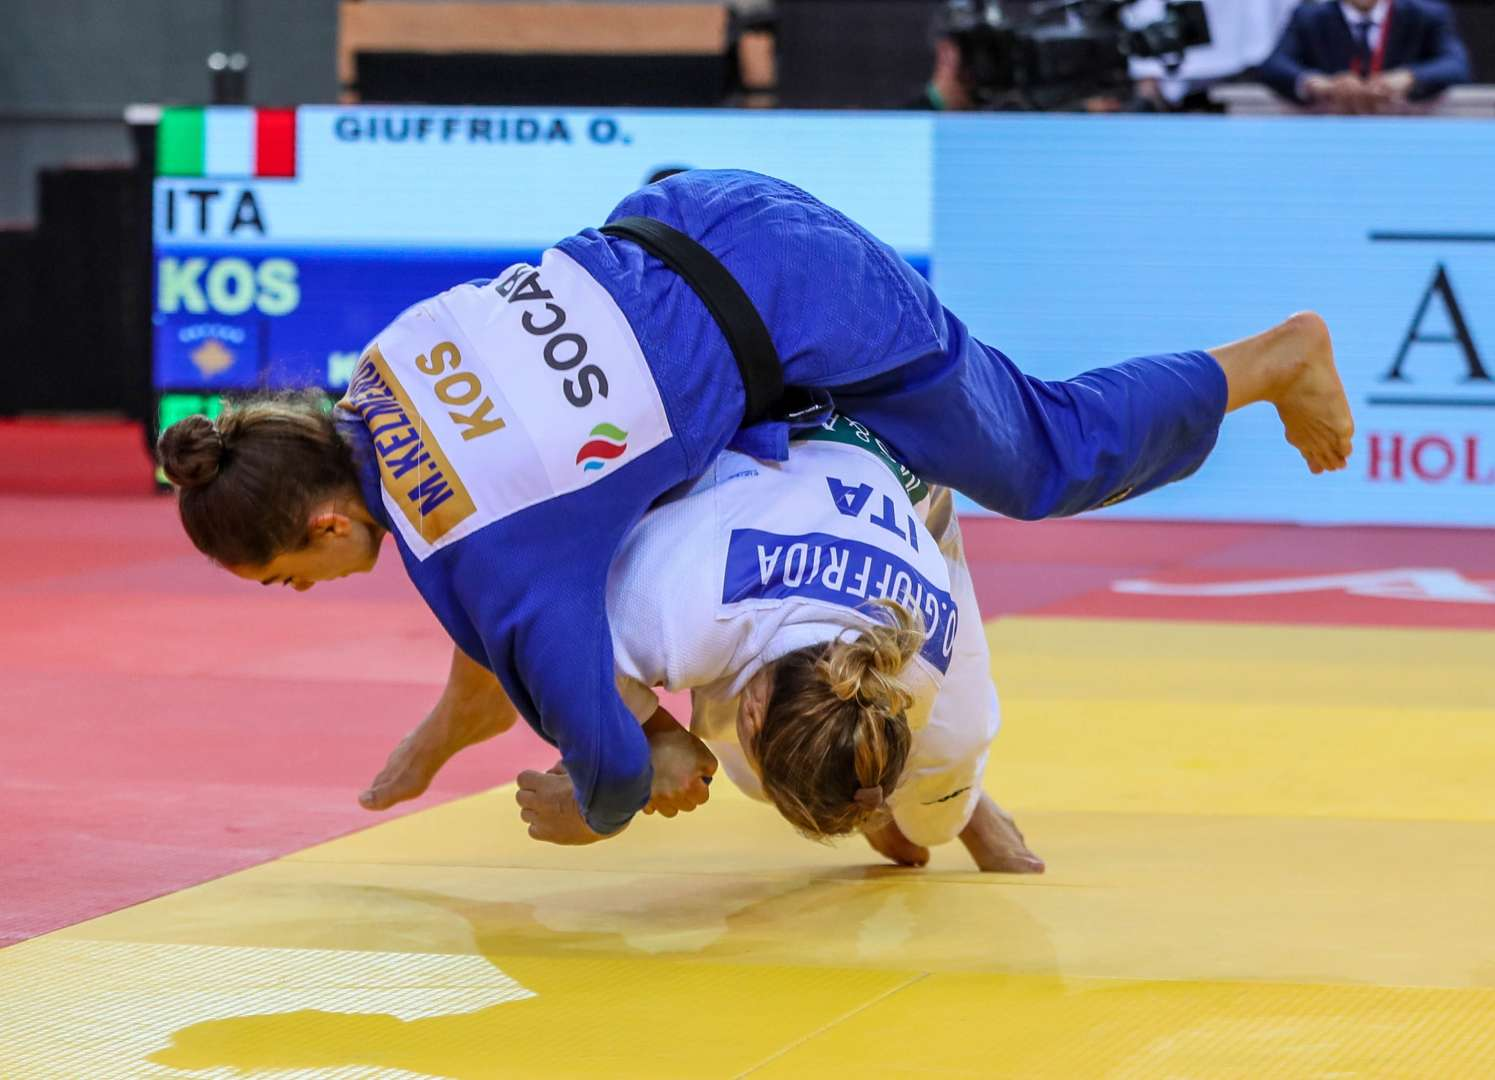 Fair play for all - judo makes history in Abu Dhabi on the eve of